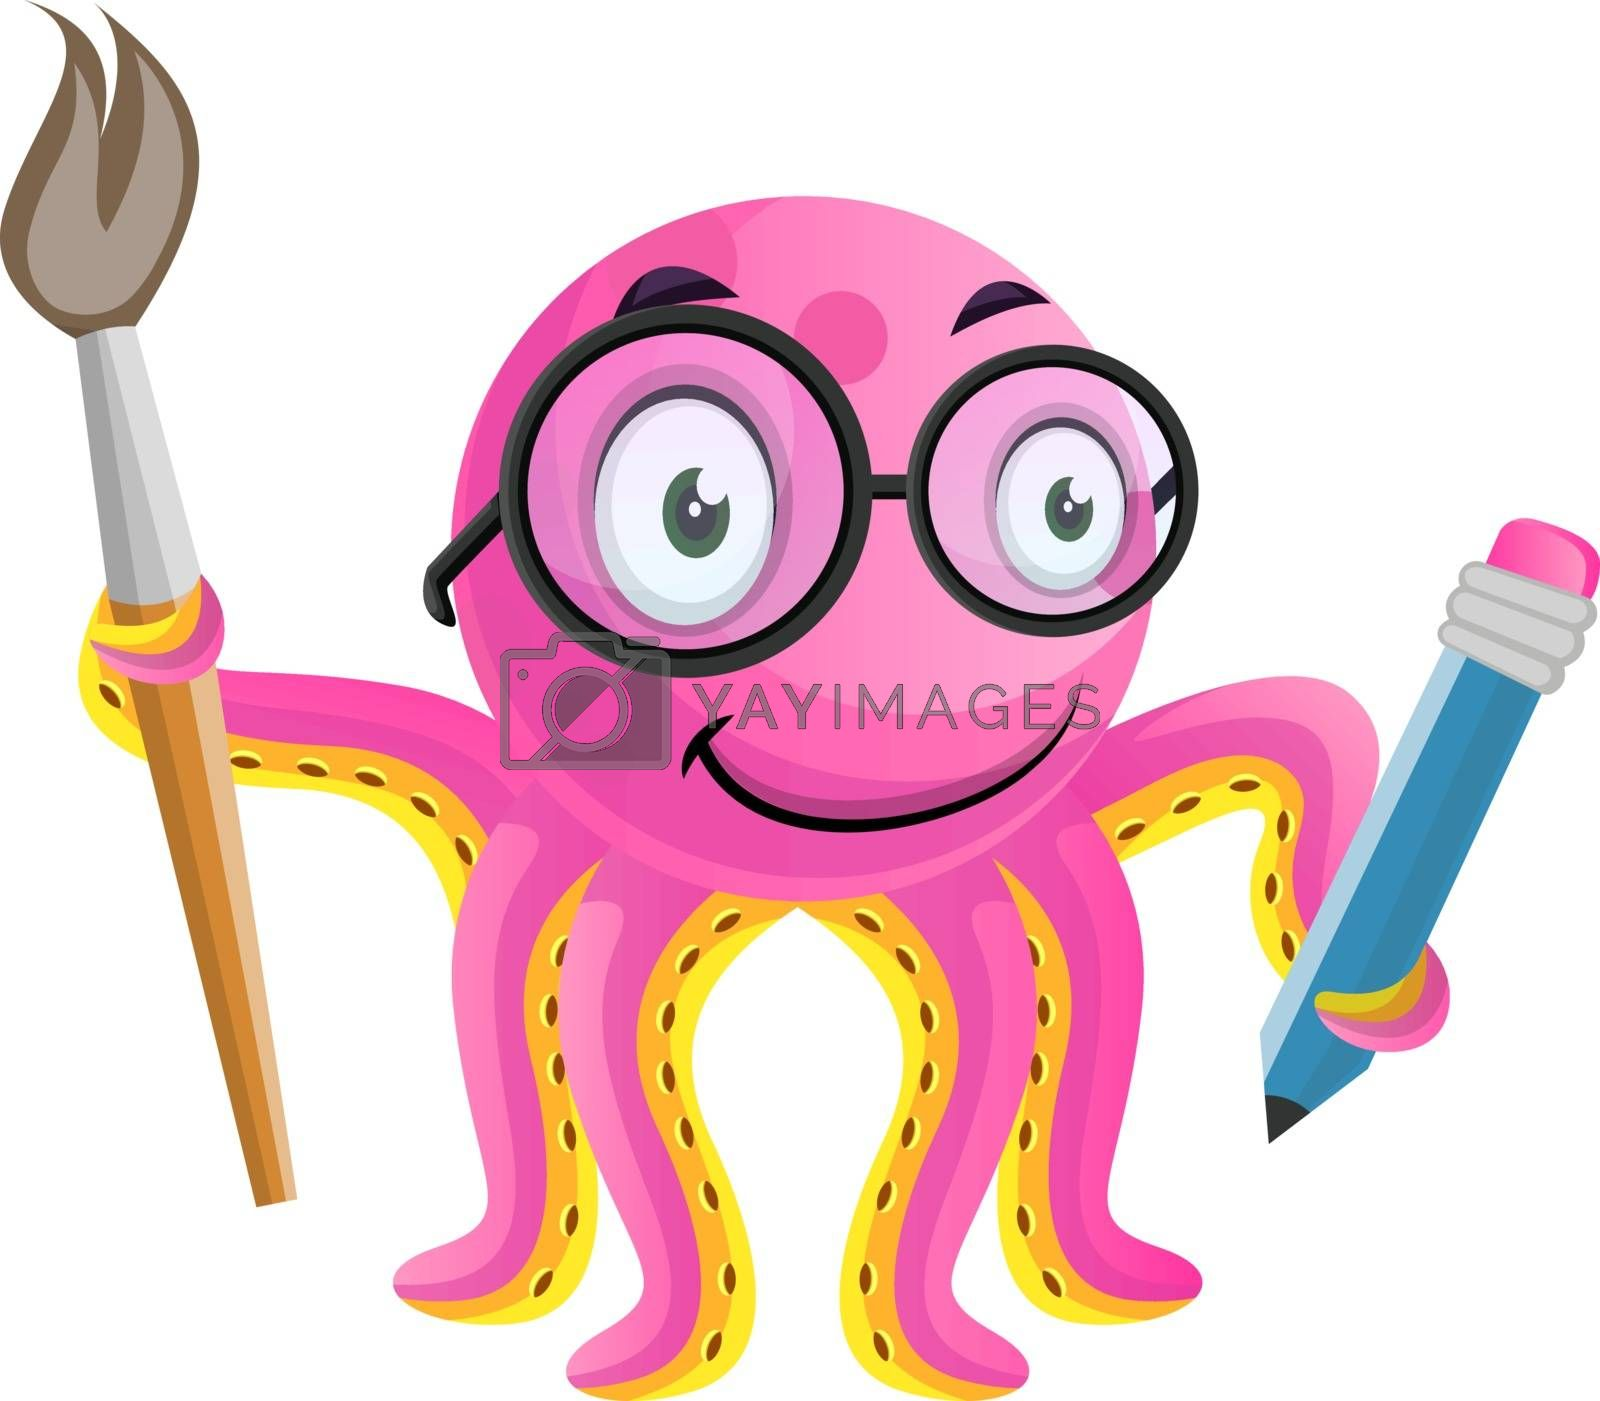 Royalty free image of Artistic octopus with pencil and brush in hand illustration vect by Morphart